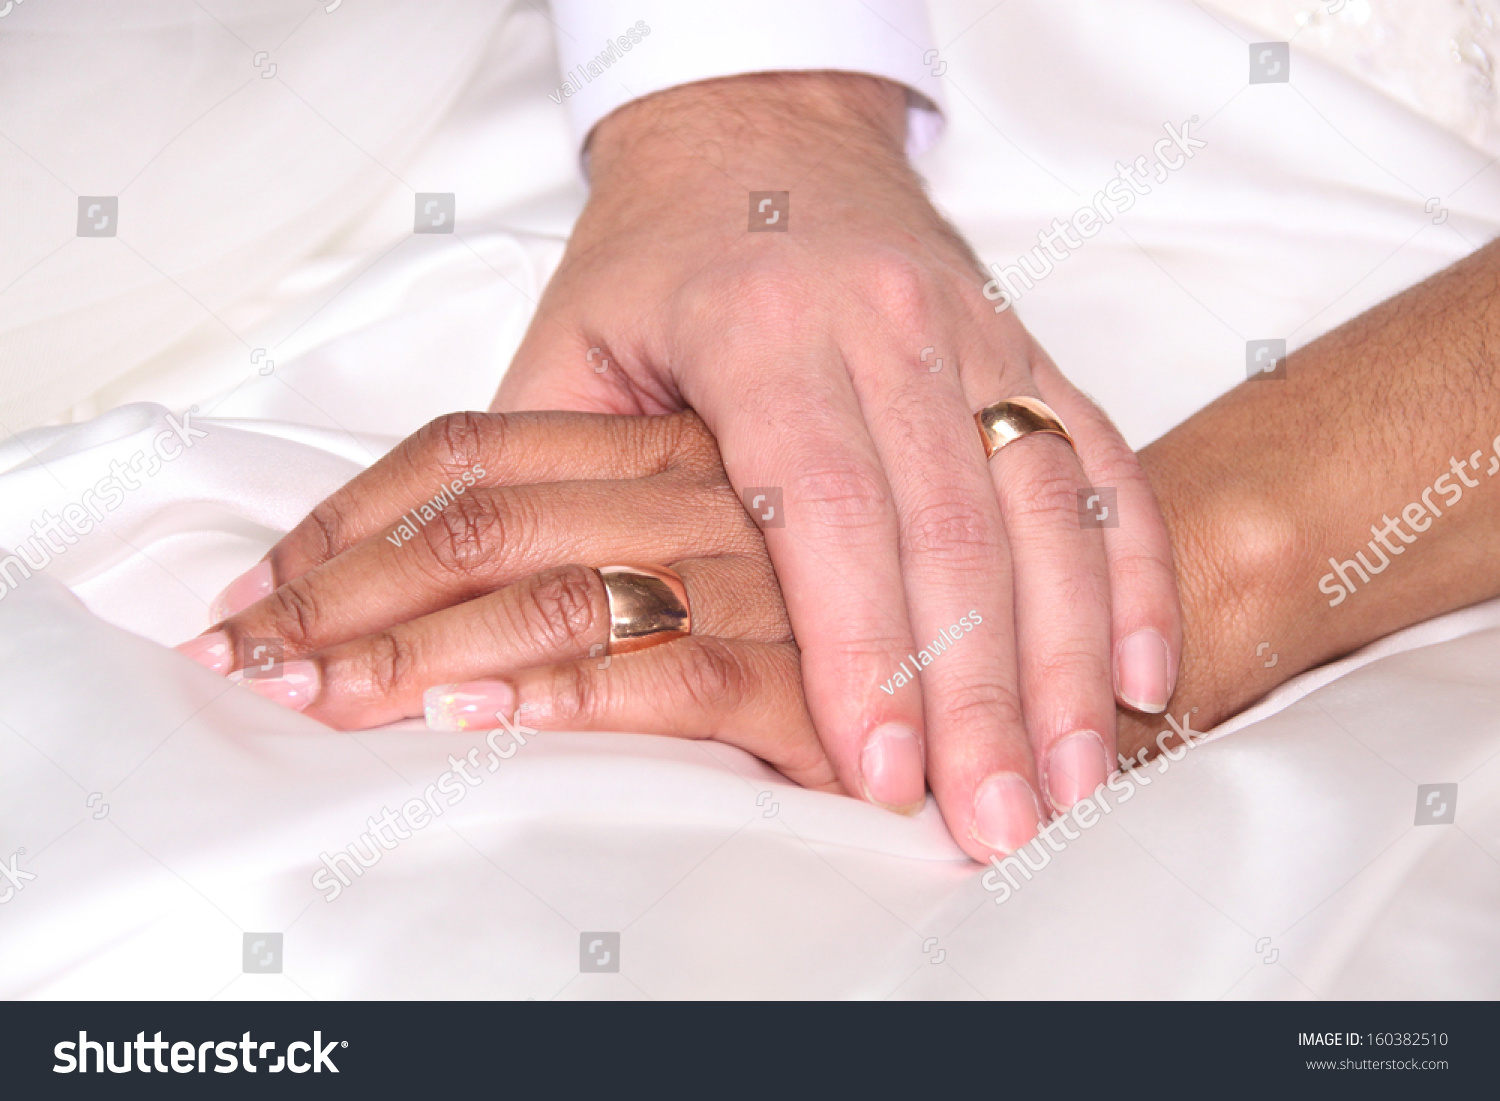 Two Hands Wedding Rings Stock Photo (Edit Now) 160382510 - Shutterstock